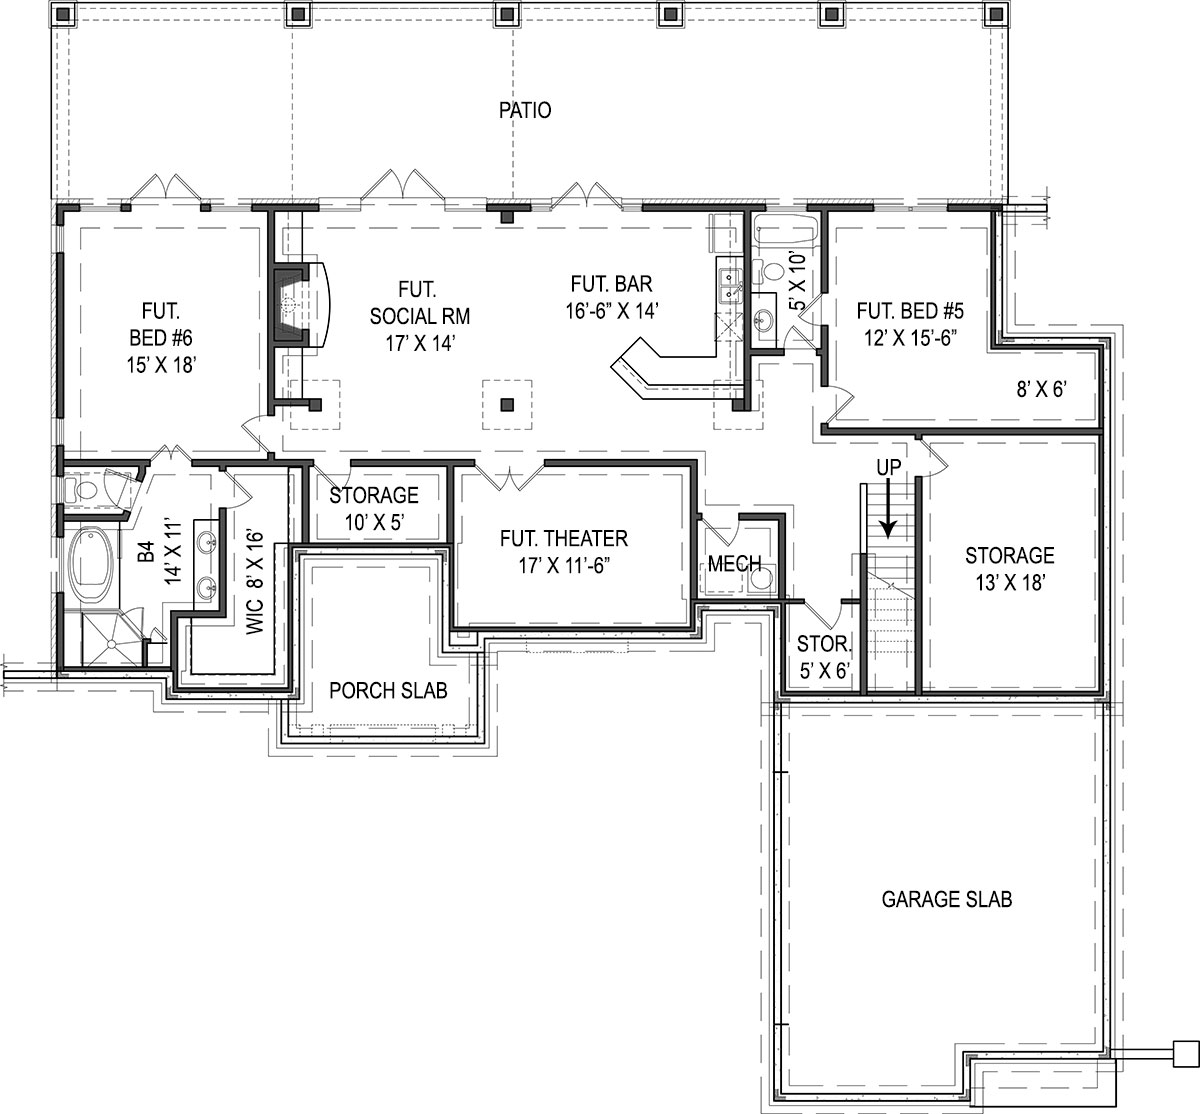 4 Bedrooms And 3 5 Baths